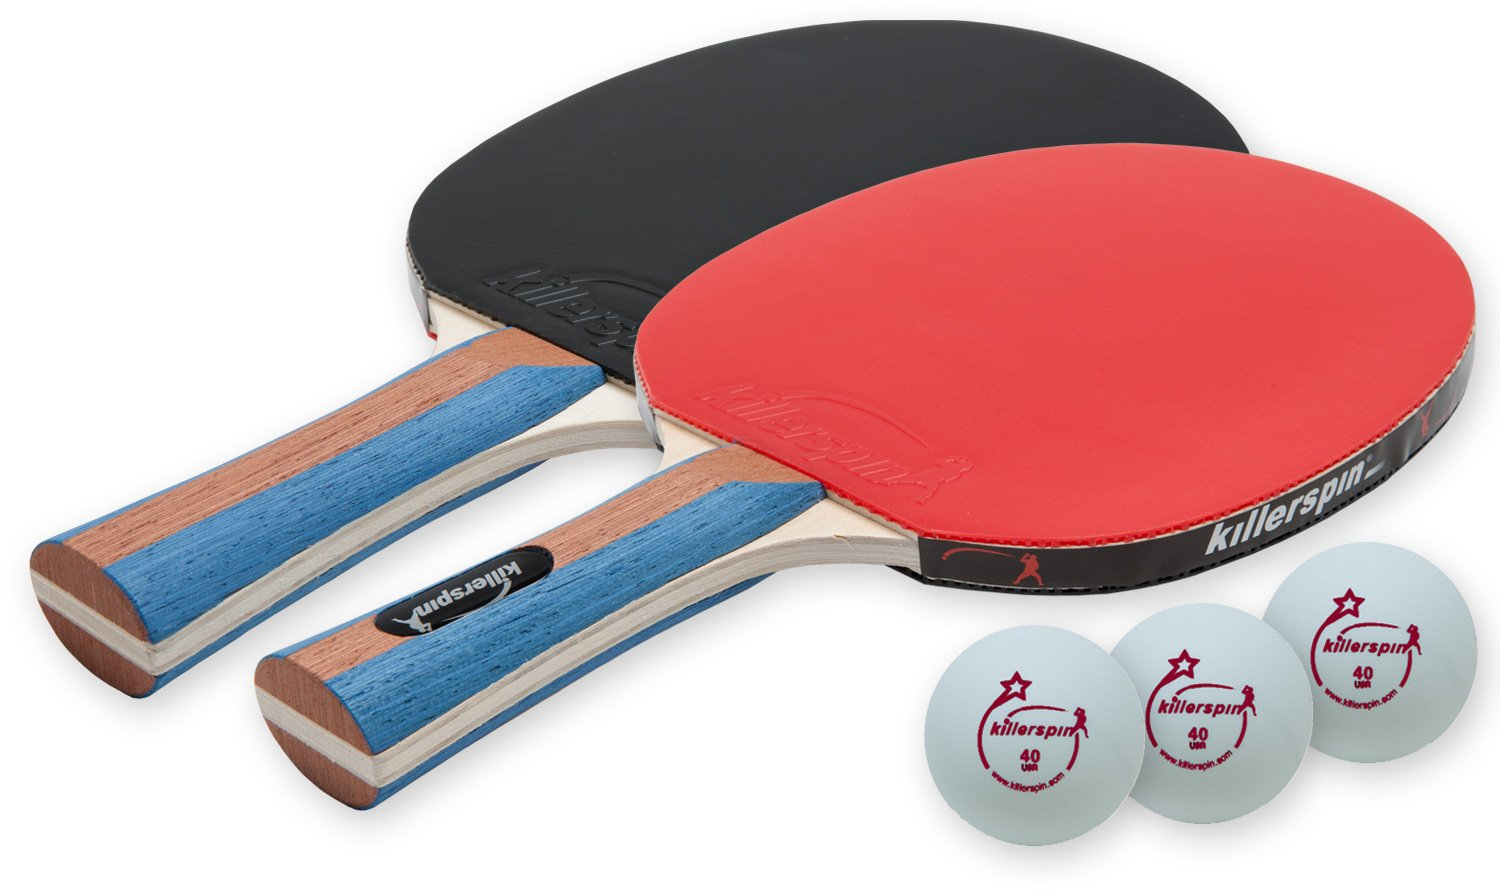 Amazon.com : Killerspin JETSET 2 - Table Tennis Set with 2 Ping Pong ...